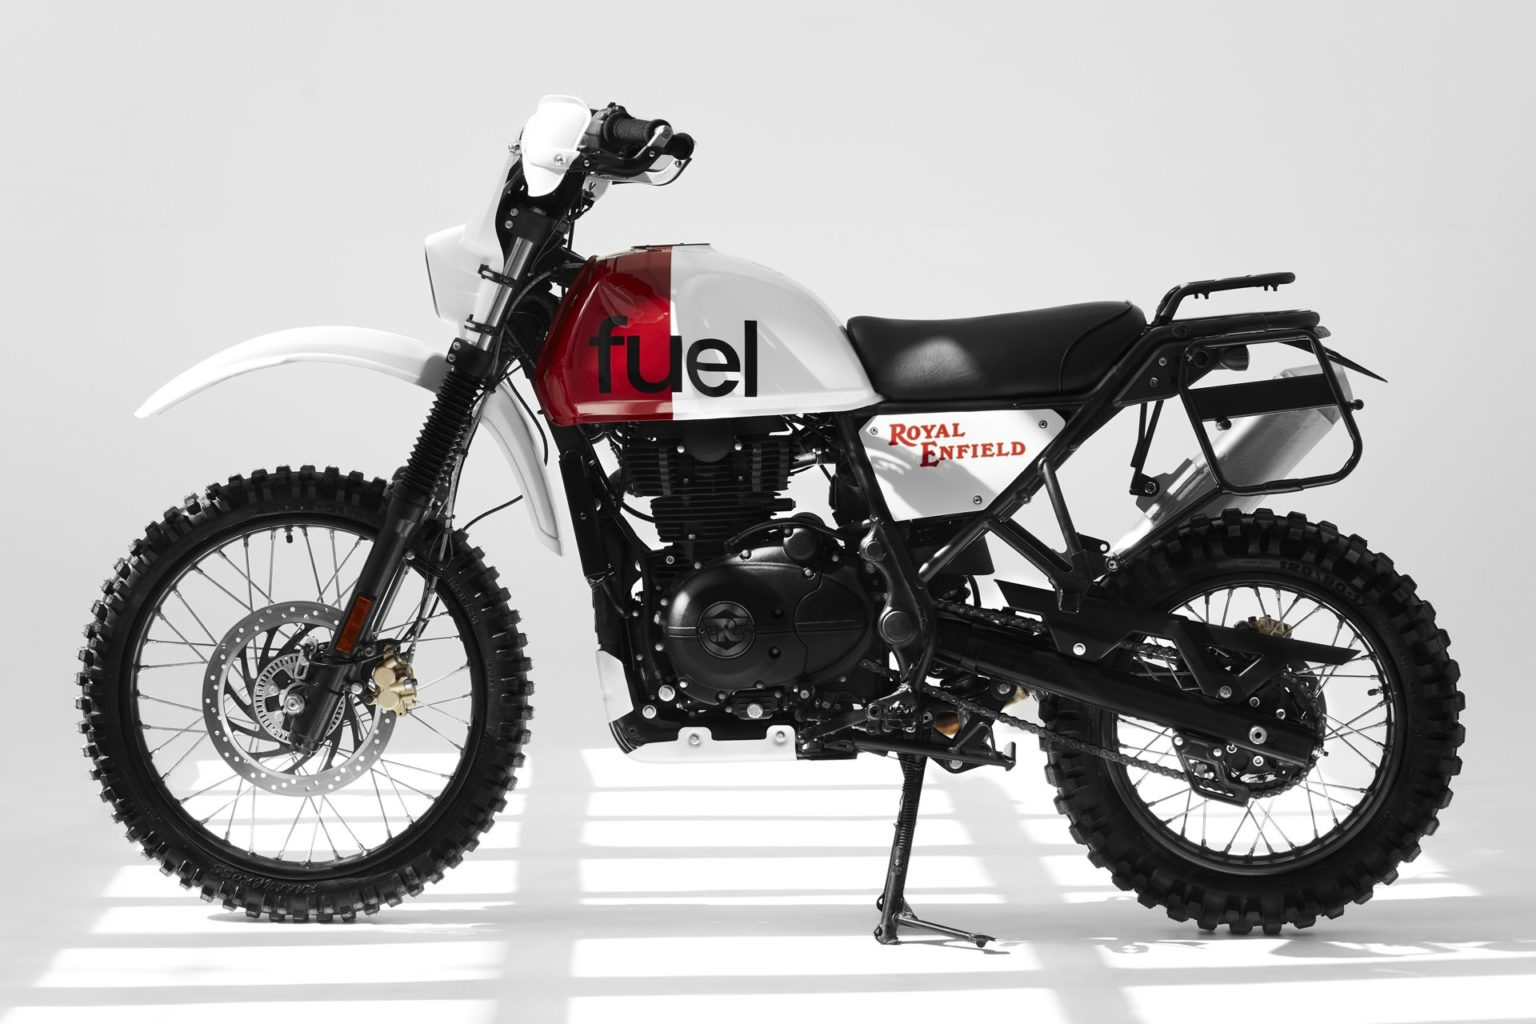 Royal Enfield Himalayan by Fuel Motorcycles